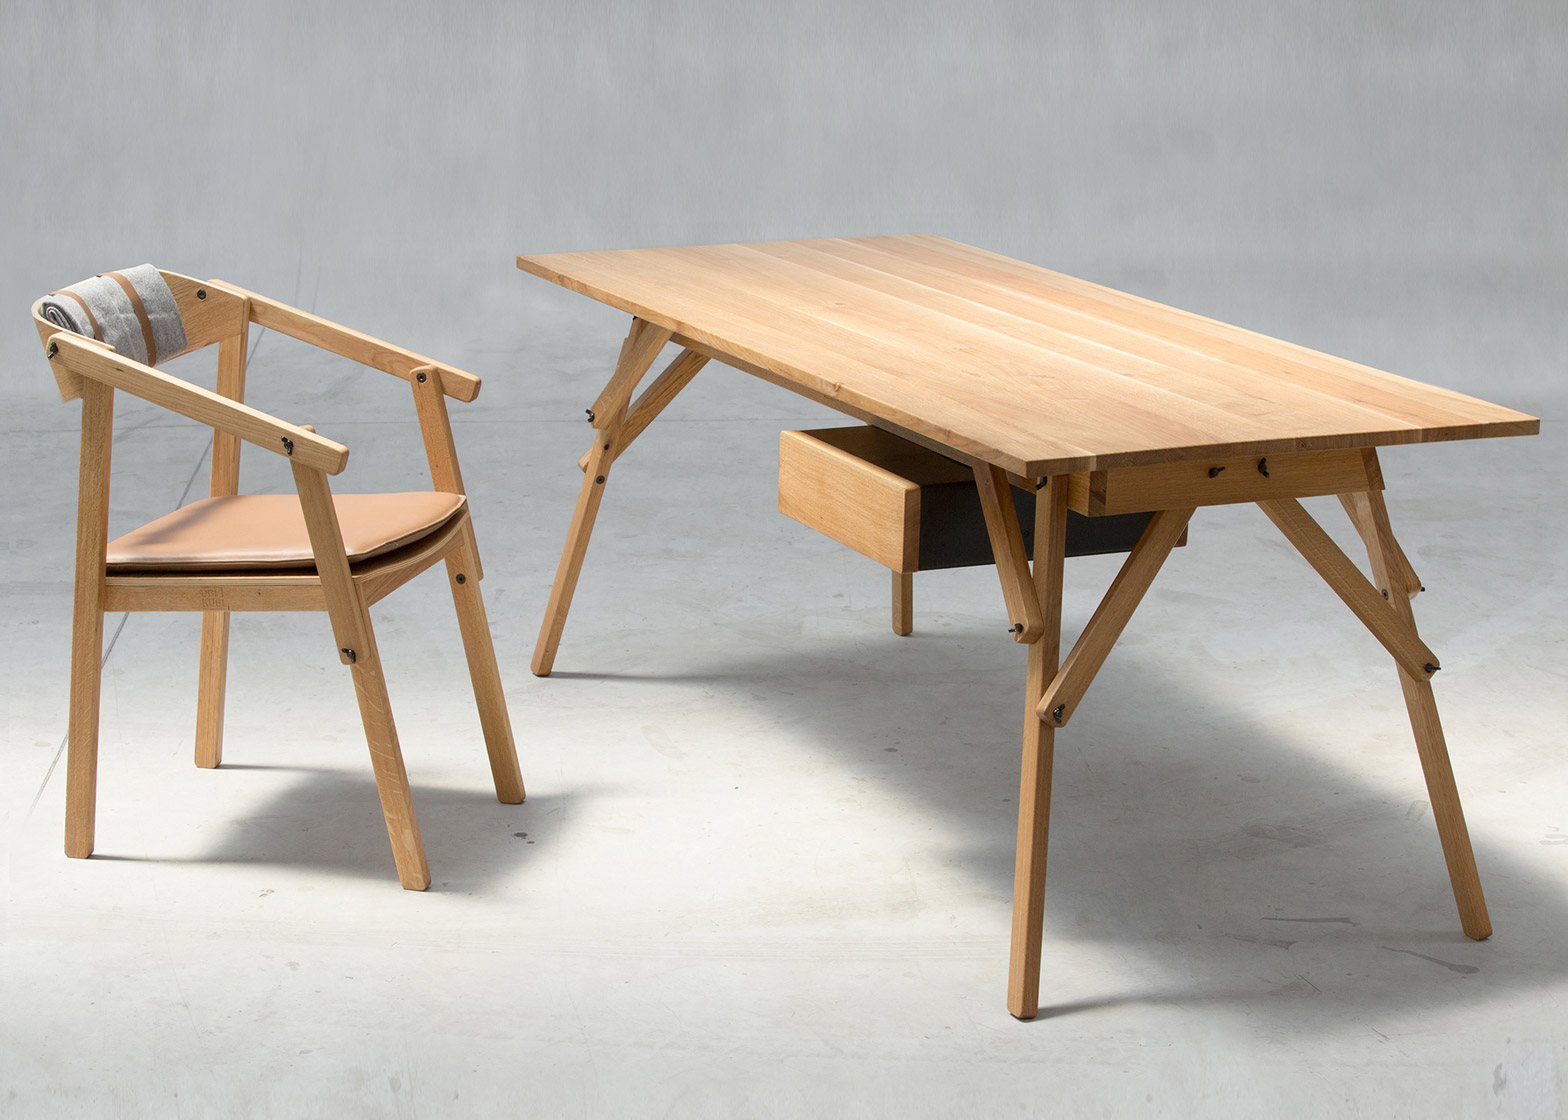 Atelier desk by Ubikubi